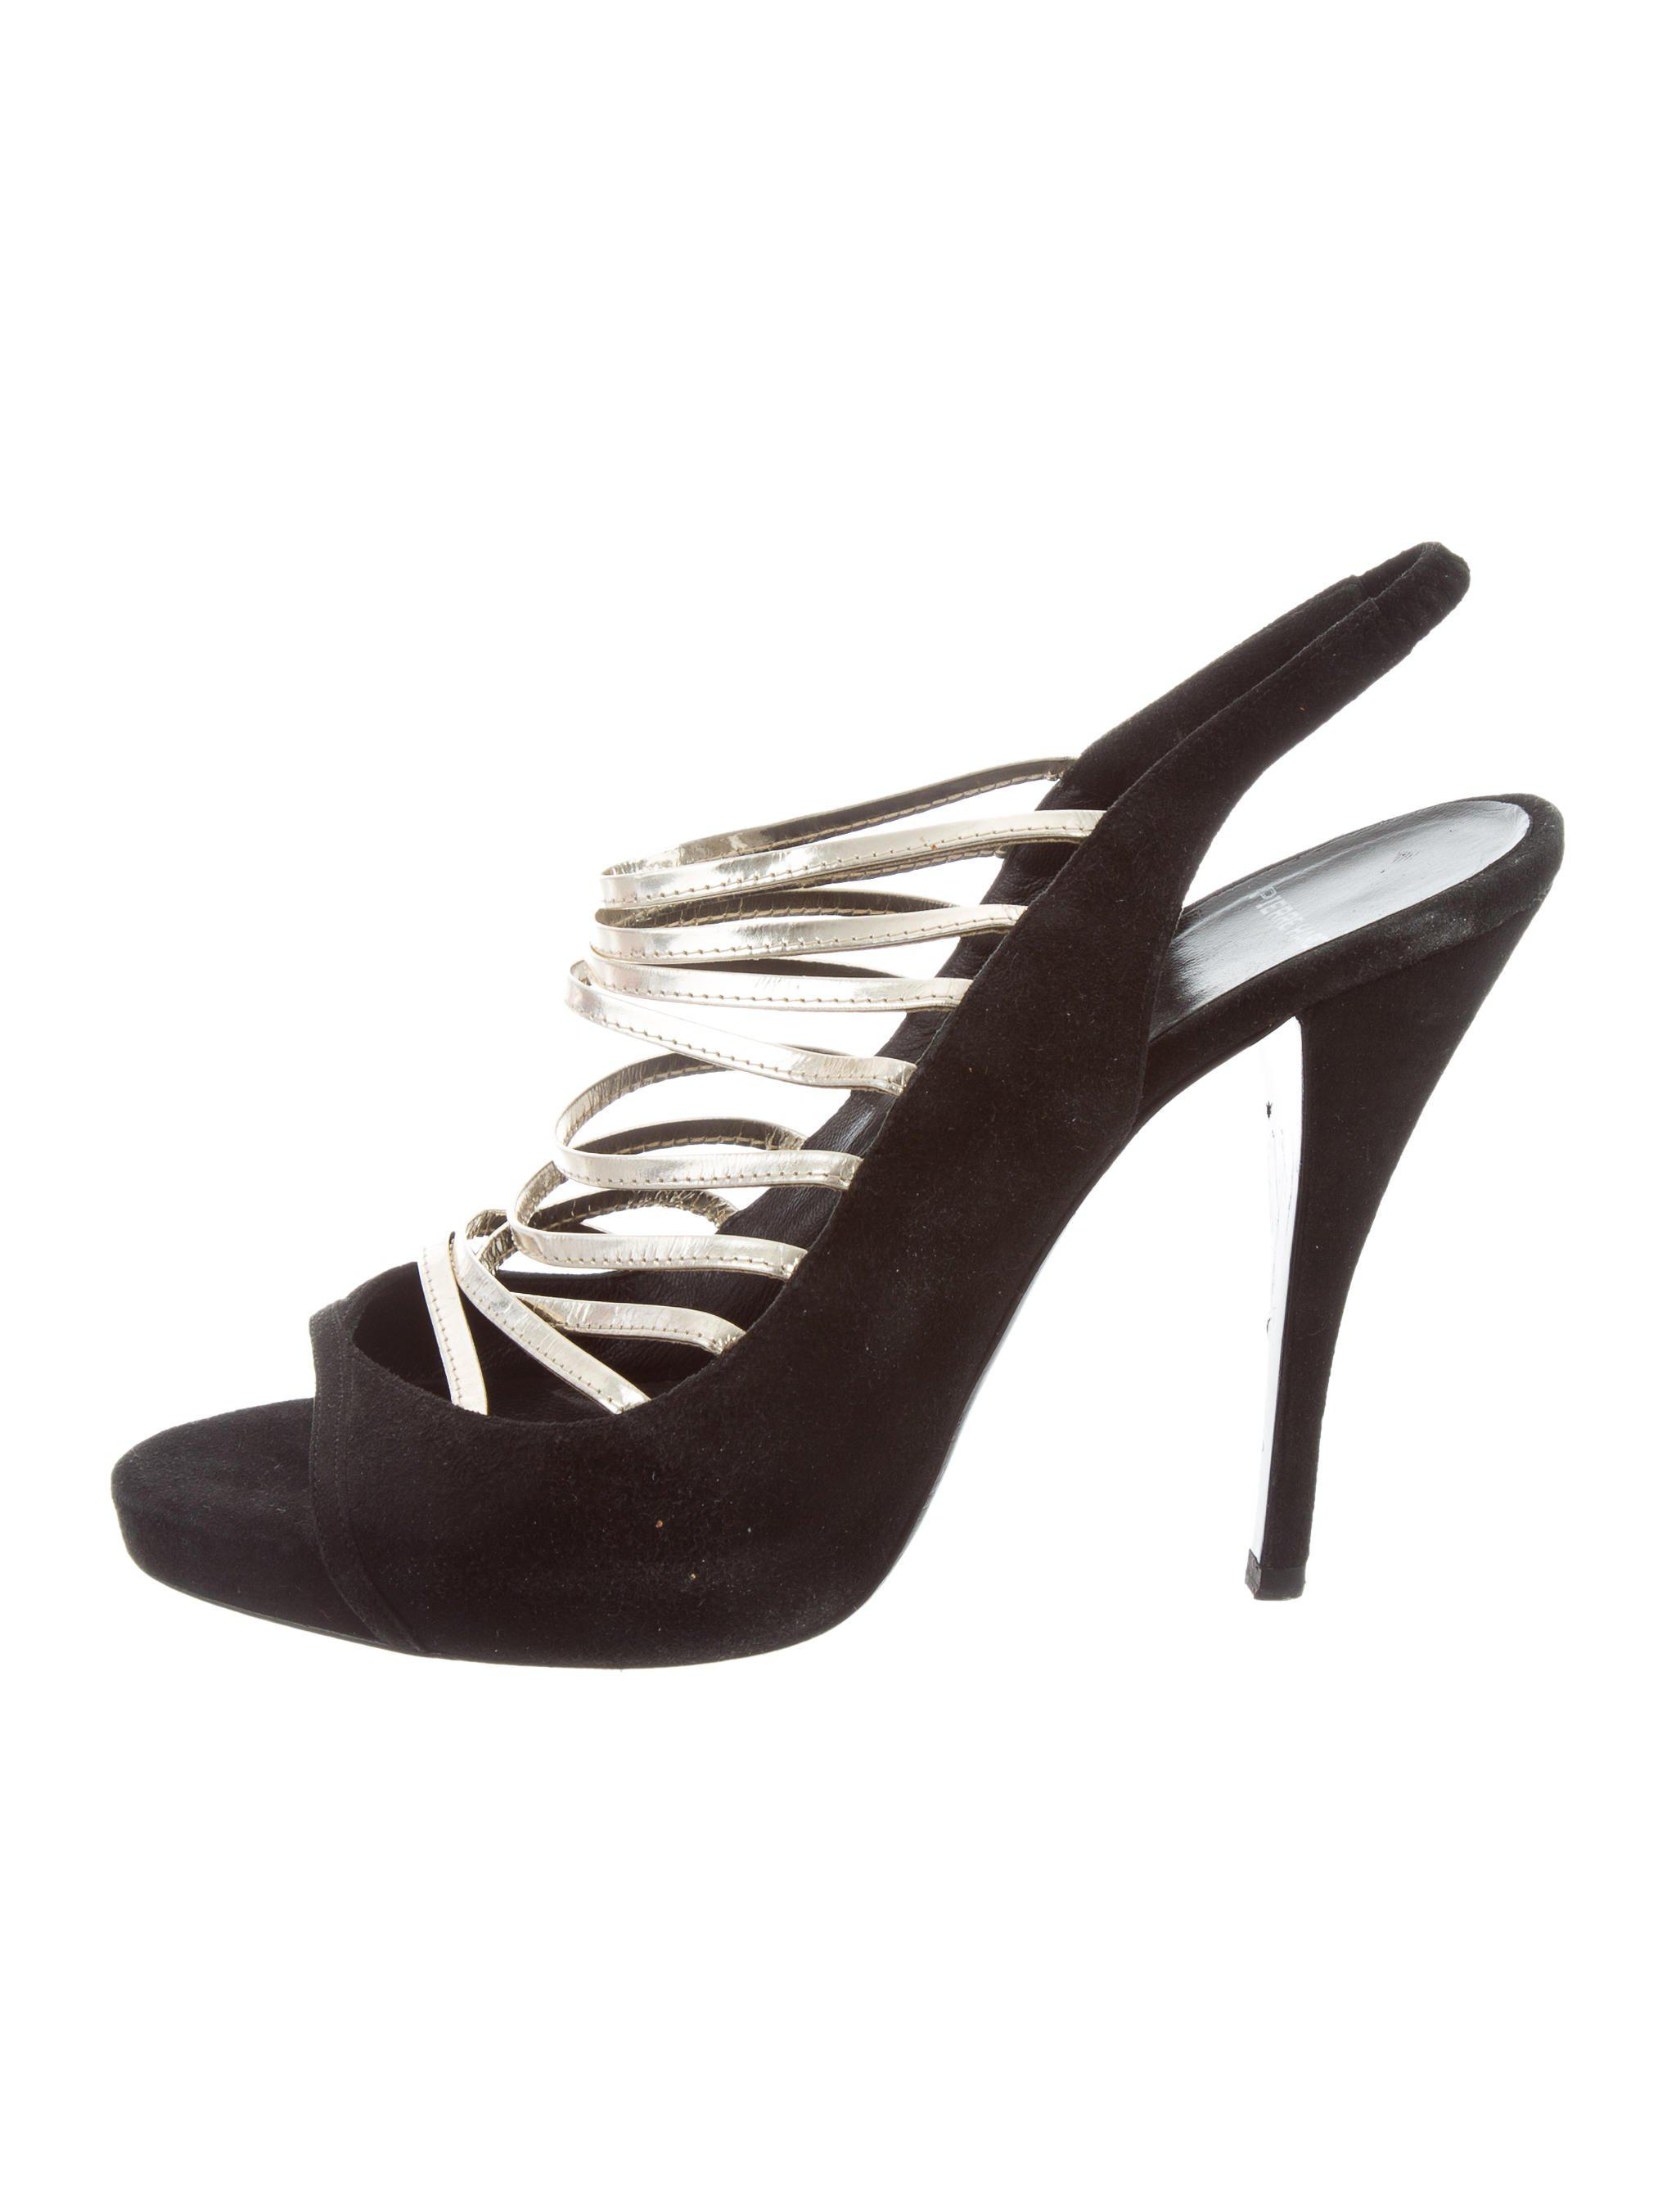 Pierre Hardy Cage Slingback Pumps